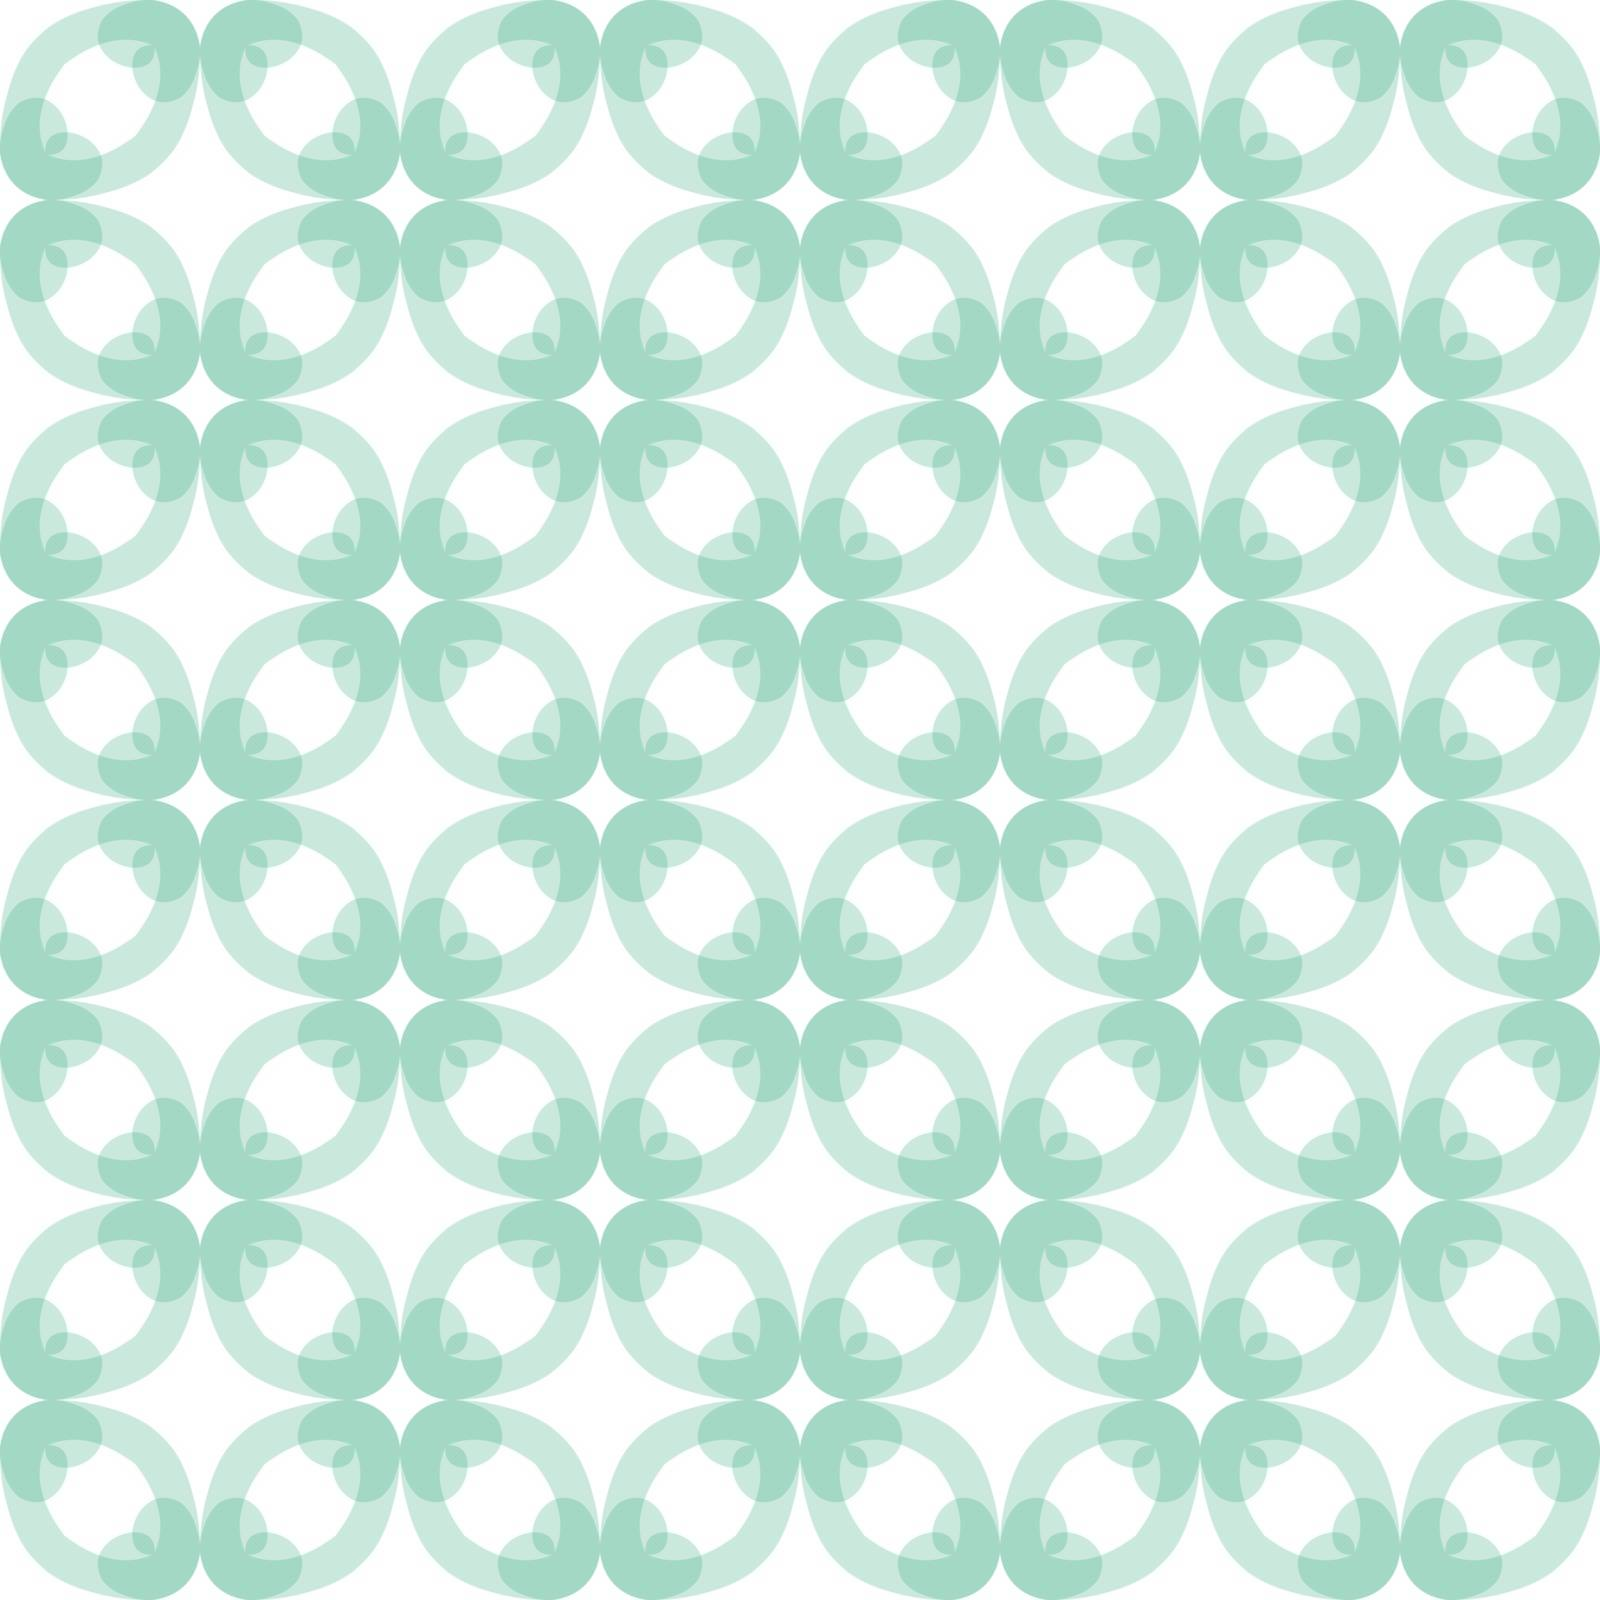 Seamless illustrated pattern made of abstract turquoise elements on white